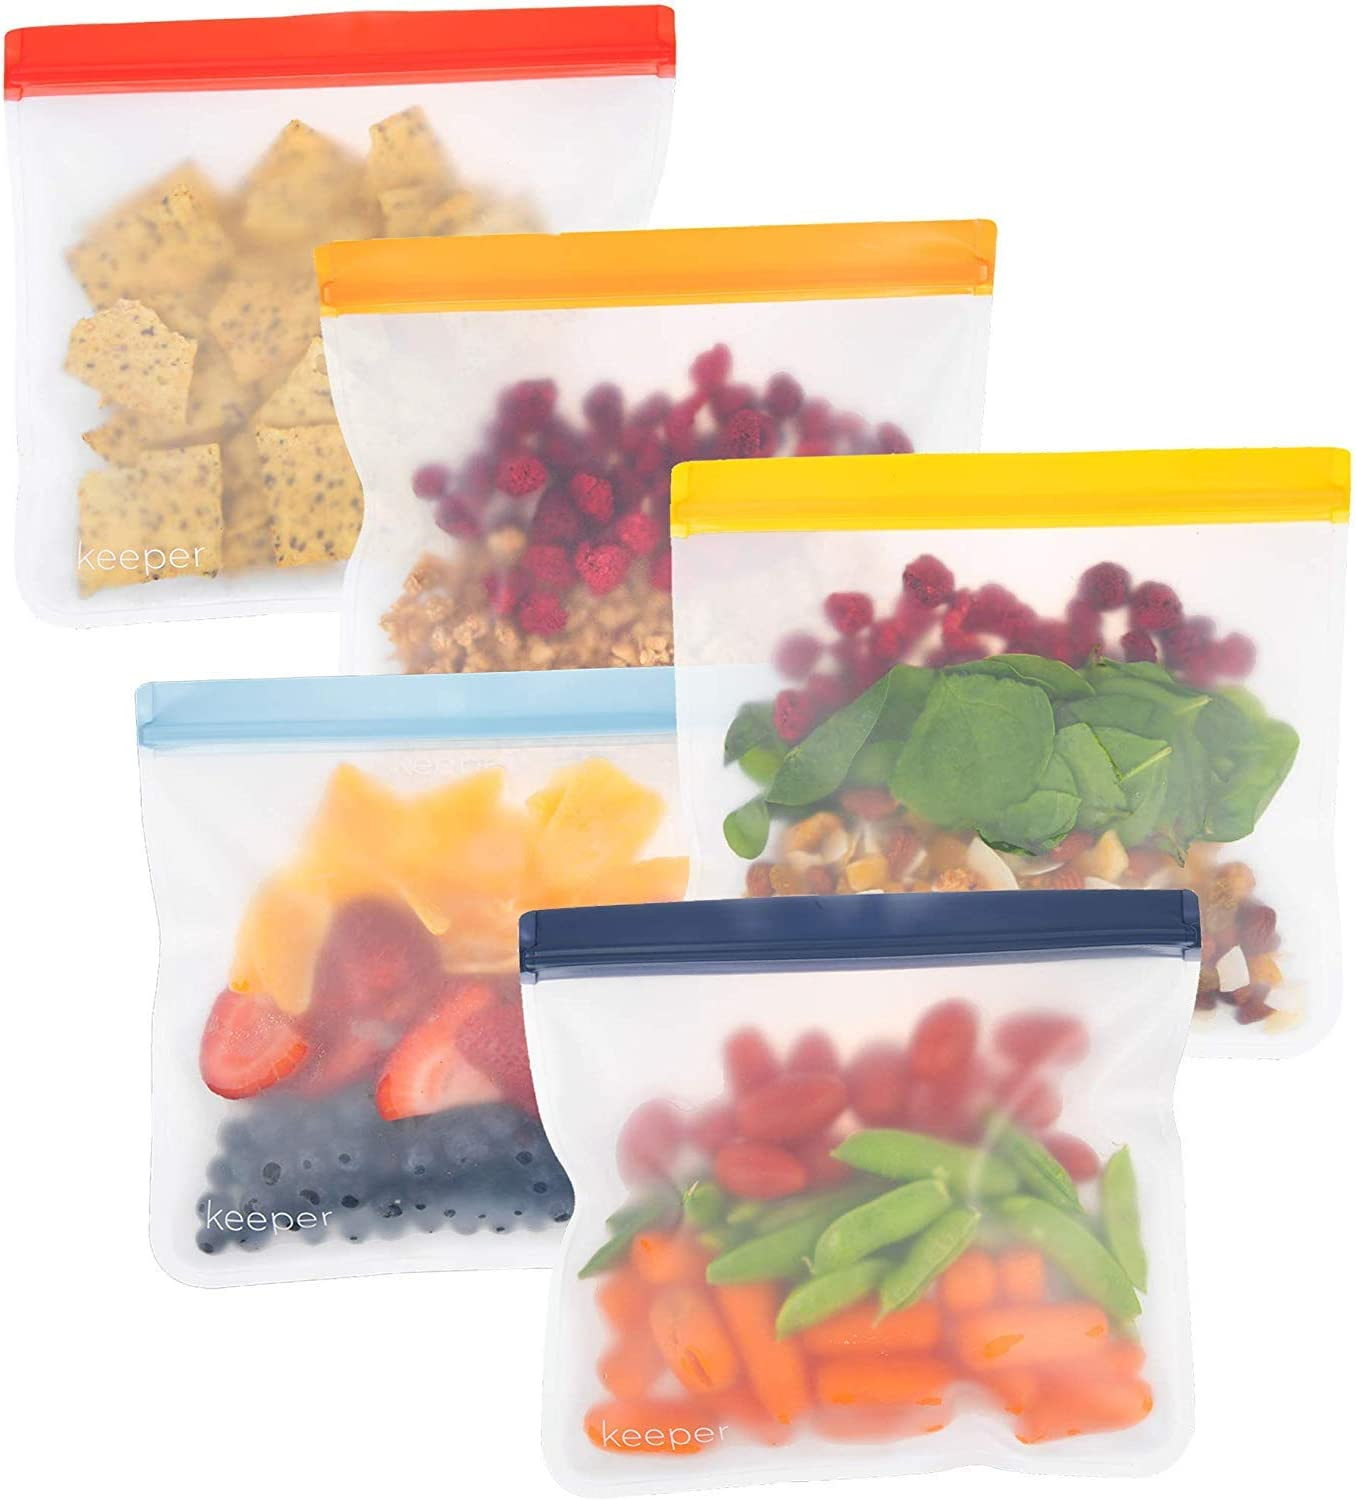 Keeper Reusable Sandwich Bags (Set of 5, 32oz) - Extra Thick Reusable Ziplock Bag For Food, Lunch Storage. Reusable Snack Bags for Kids Are Resealable. Plastic Lunch Baggies Are Washable, Freezer Safe